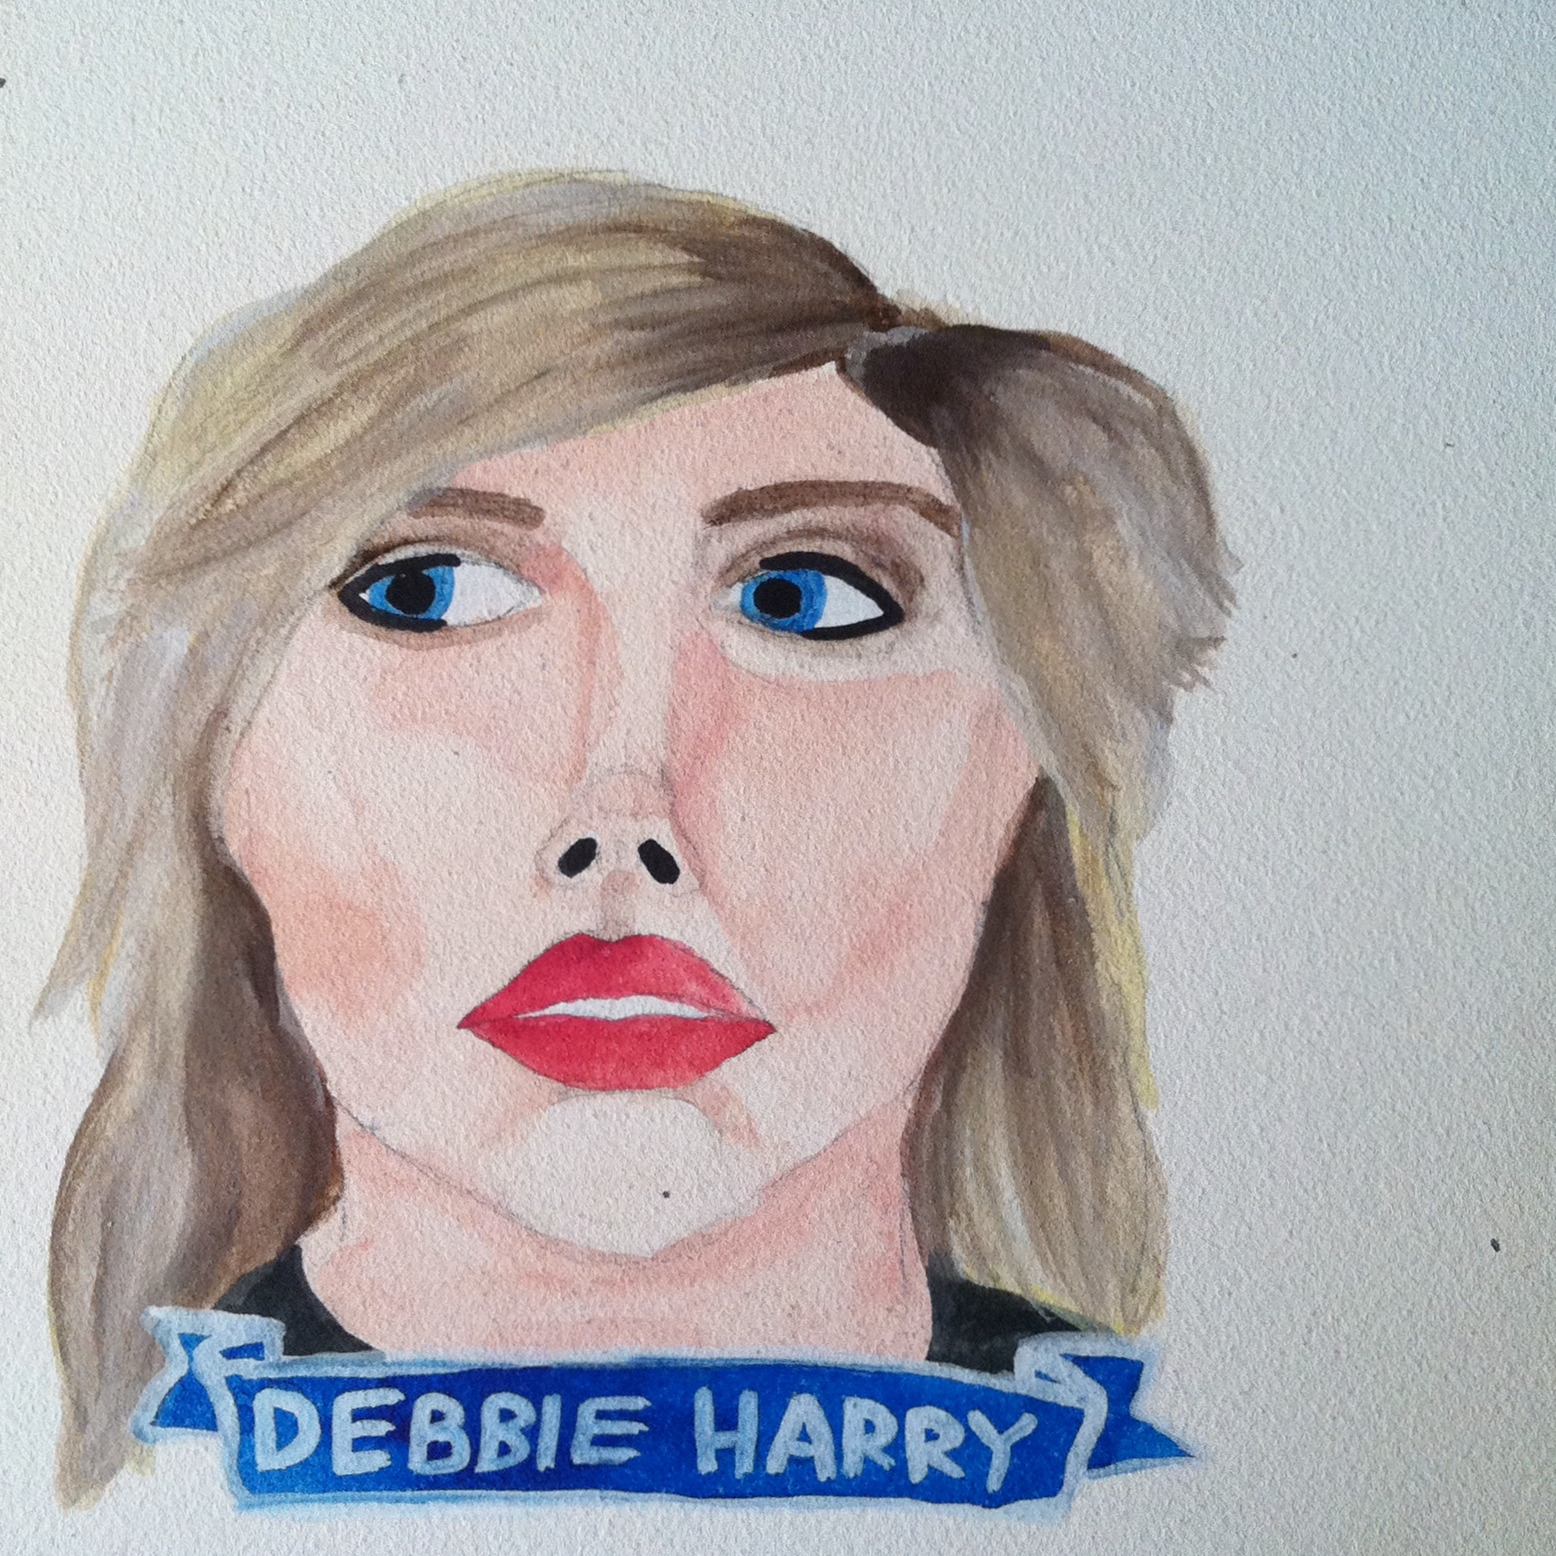 Talent Loves Company at Barbara Archer Gallery: 365 portraits by Lydia Walls - Debbie Harry